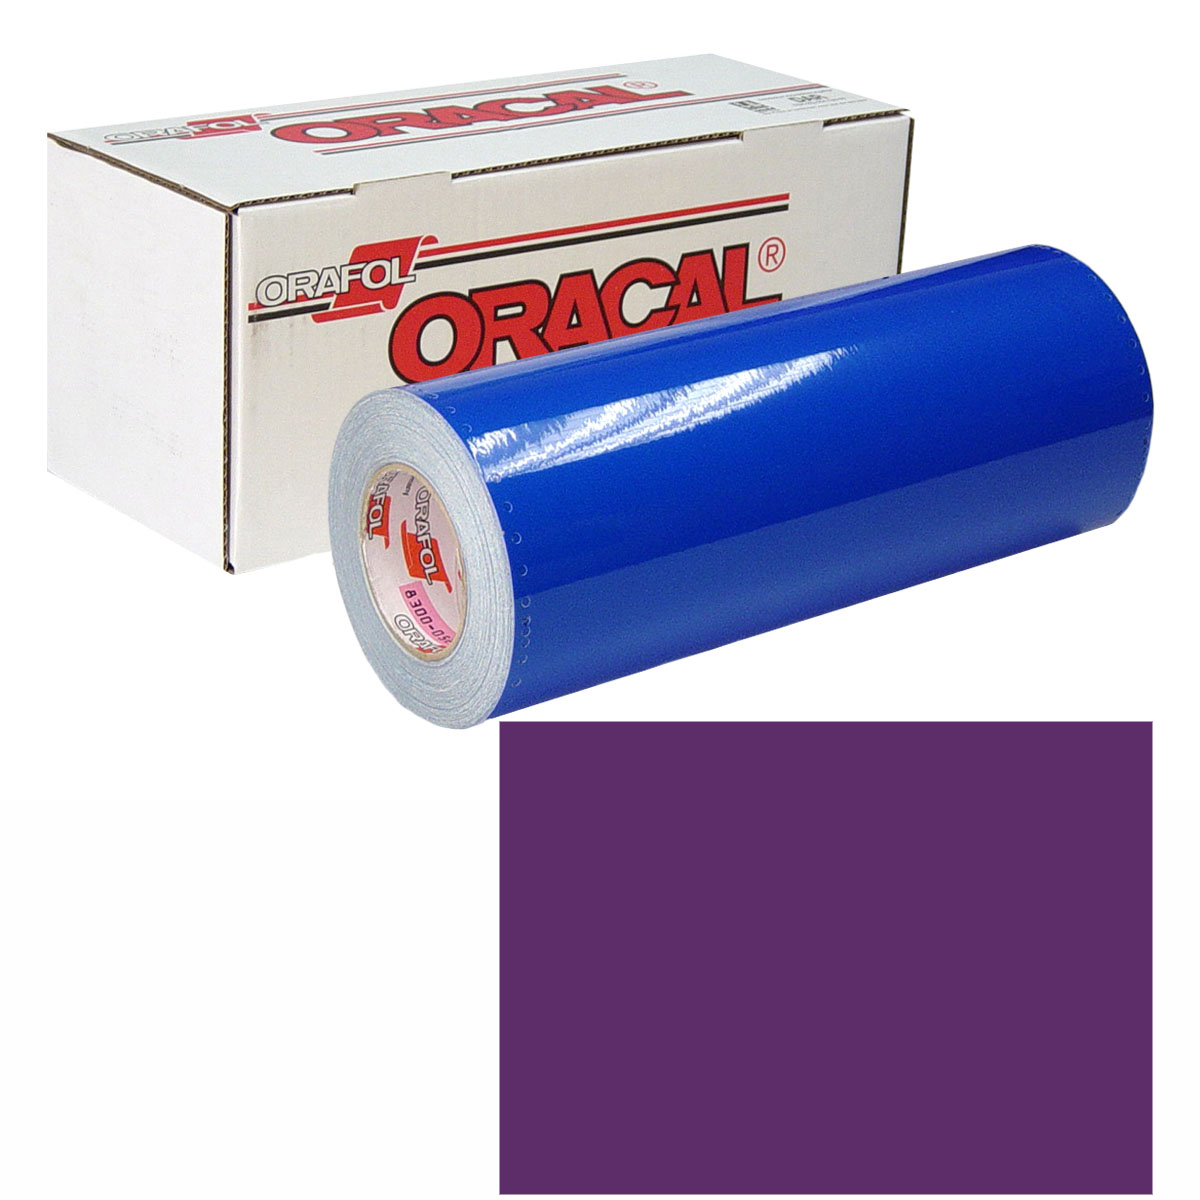 ORACAL 631 Unp 48in X 10yd 040 Violet